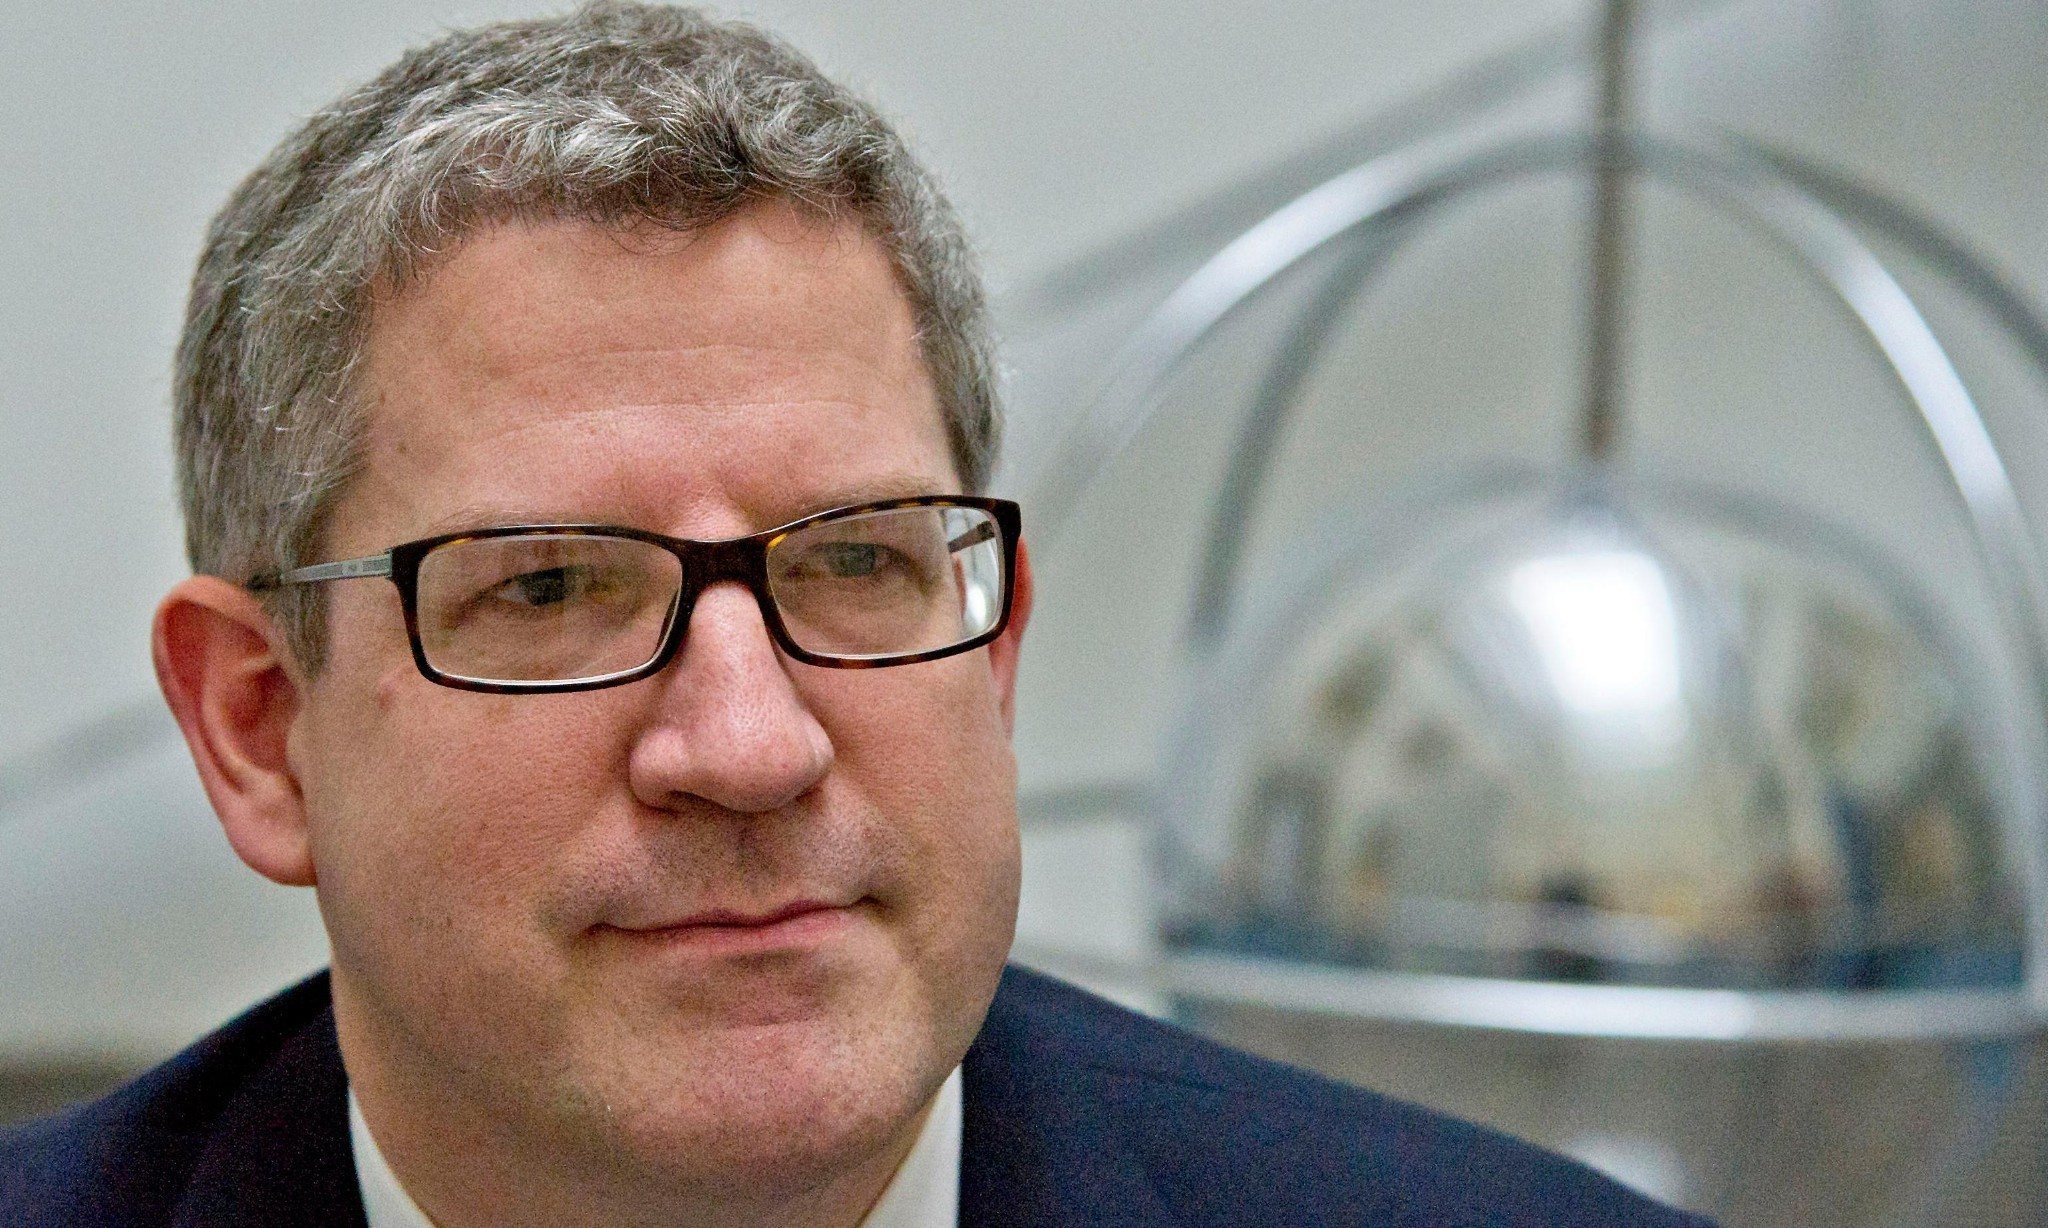 'Increasingly aggressive' Russia a growing threat to UK, says MI5 head